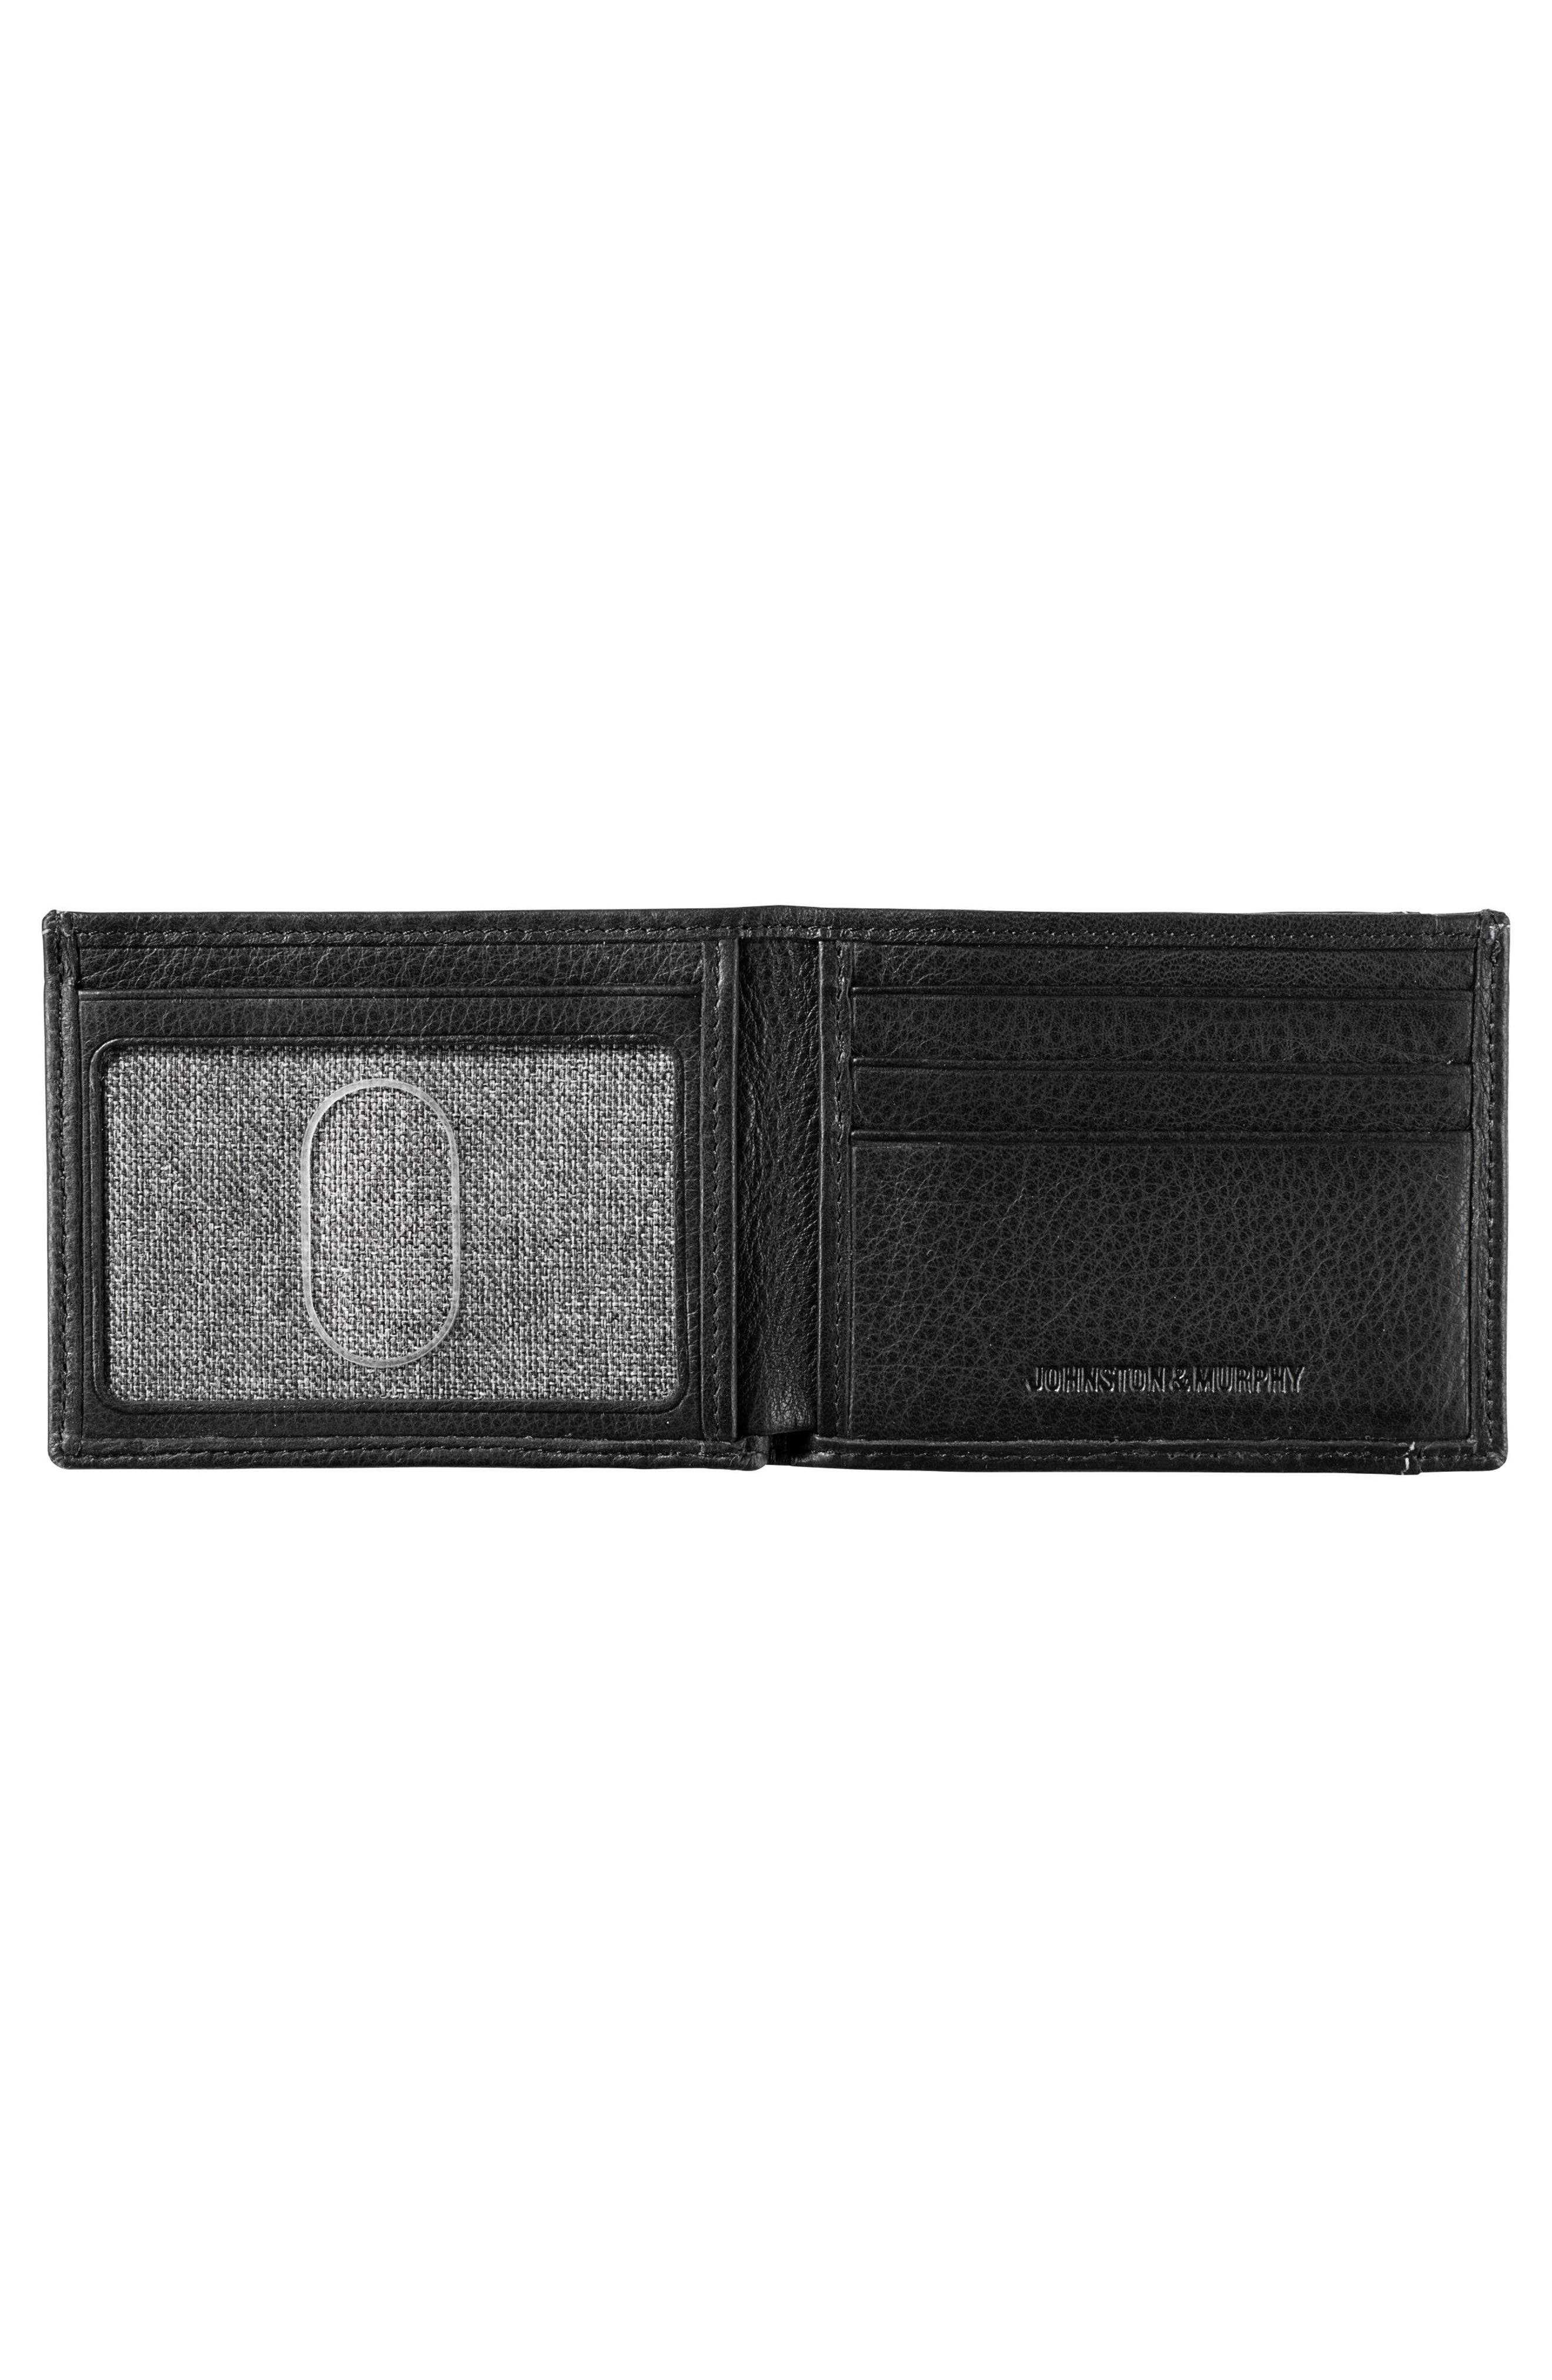 Leather Wallet,                             Alternate thumbnail 2, color,                             BLACK